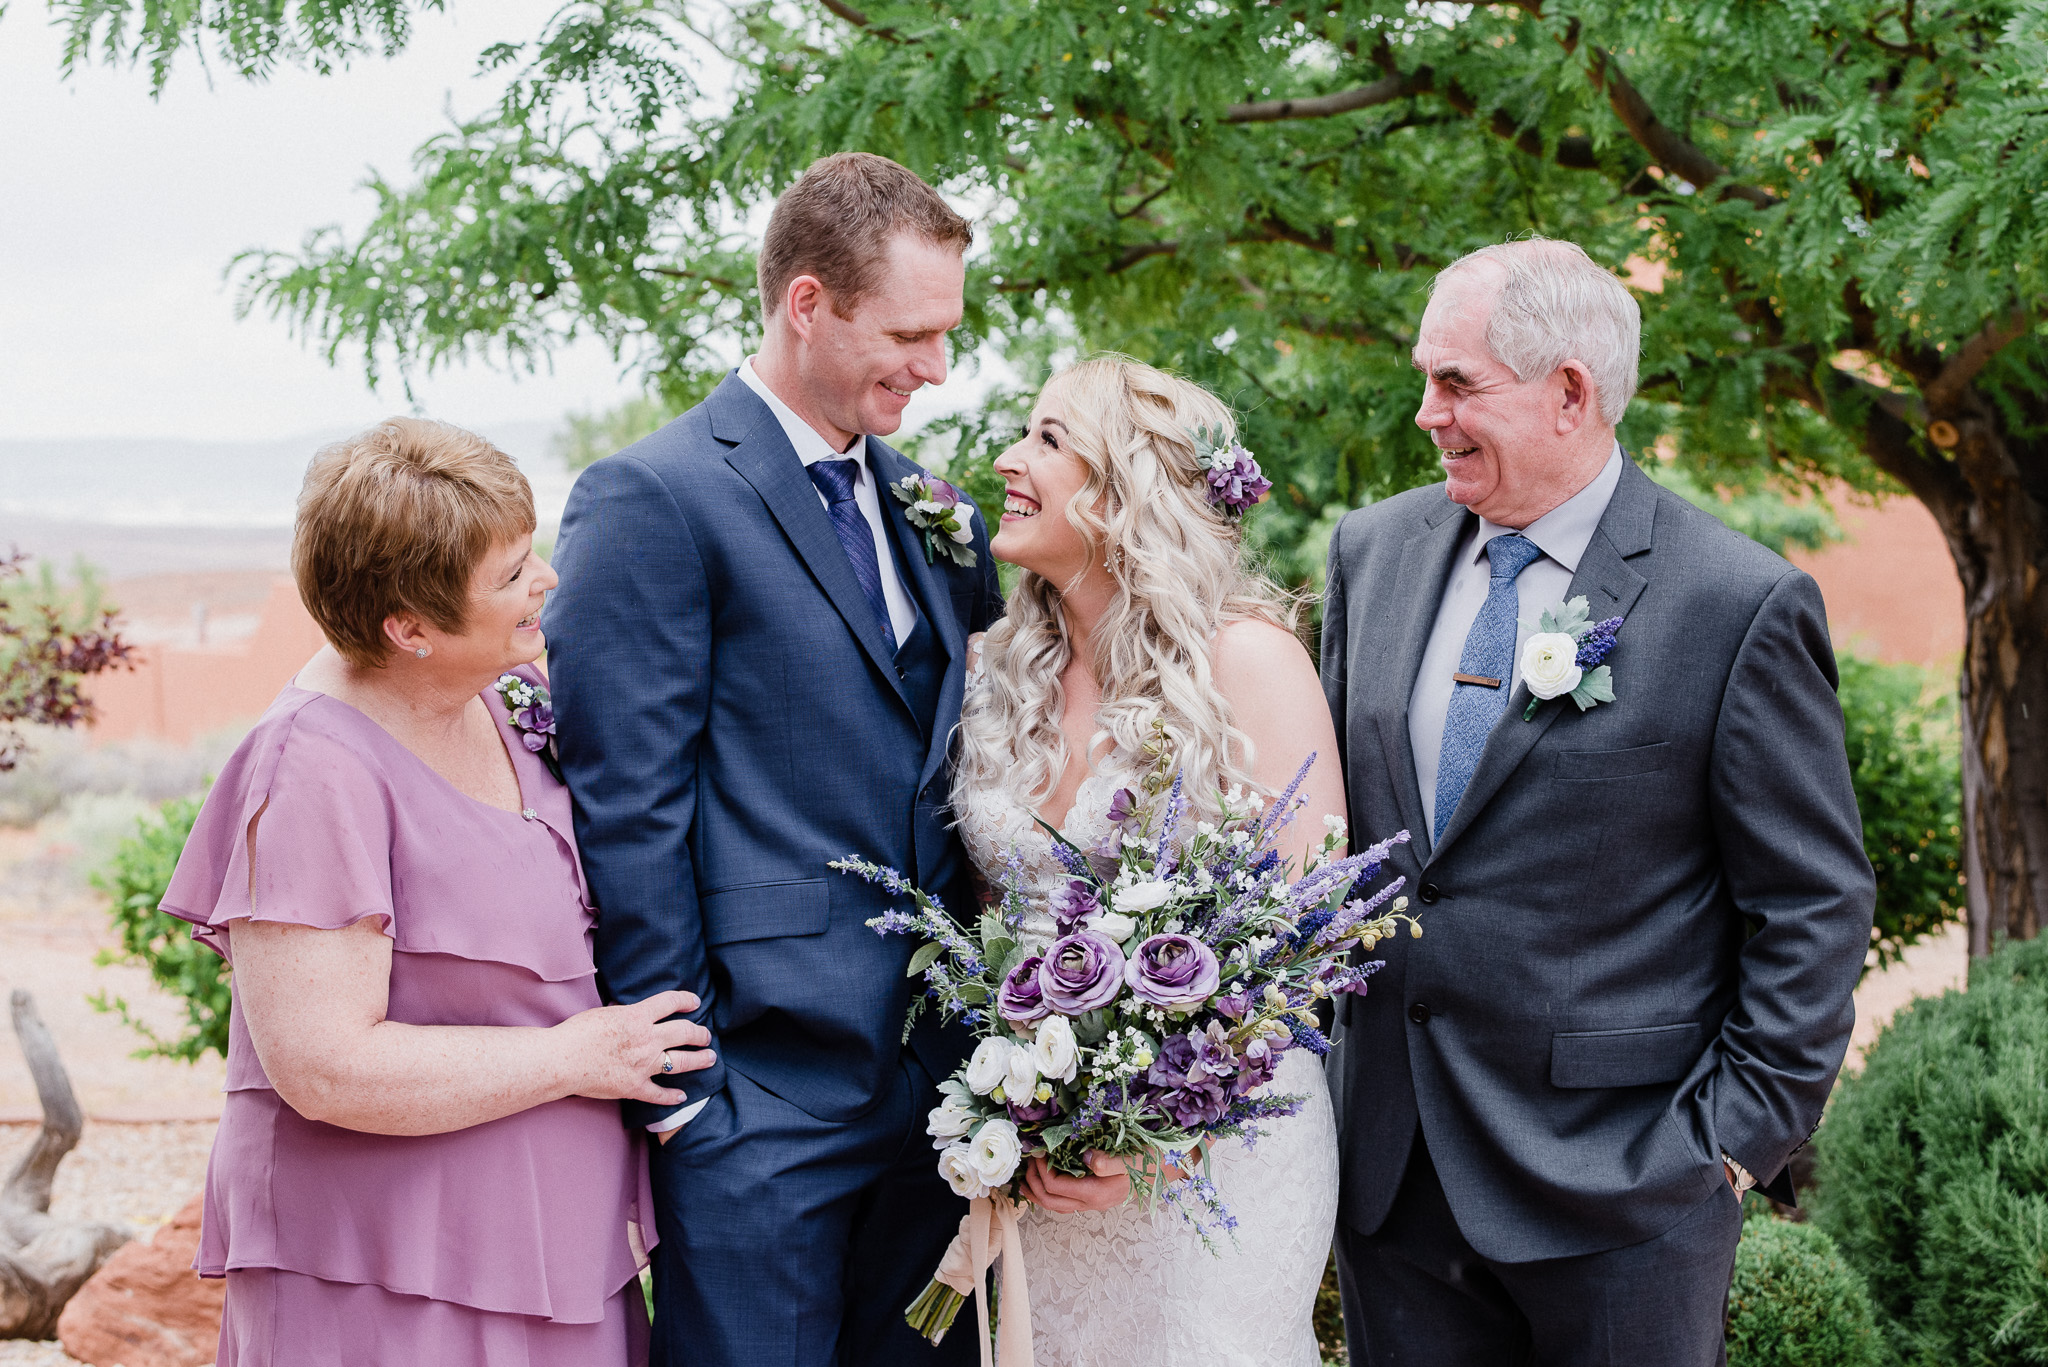 Intimate wedding ideas by Jenn Kavanagh Photography